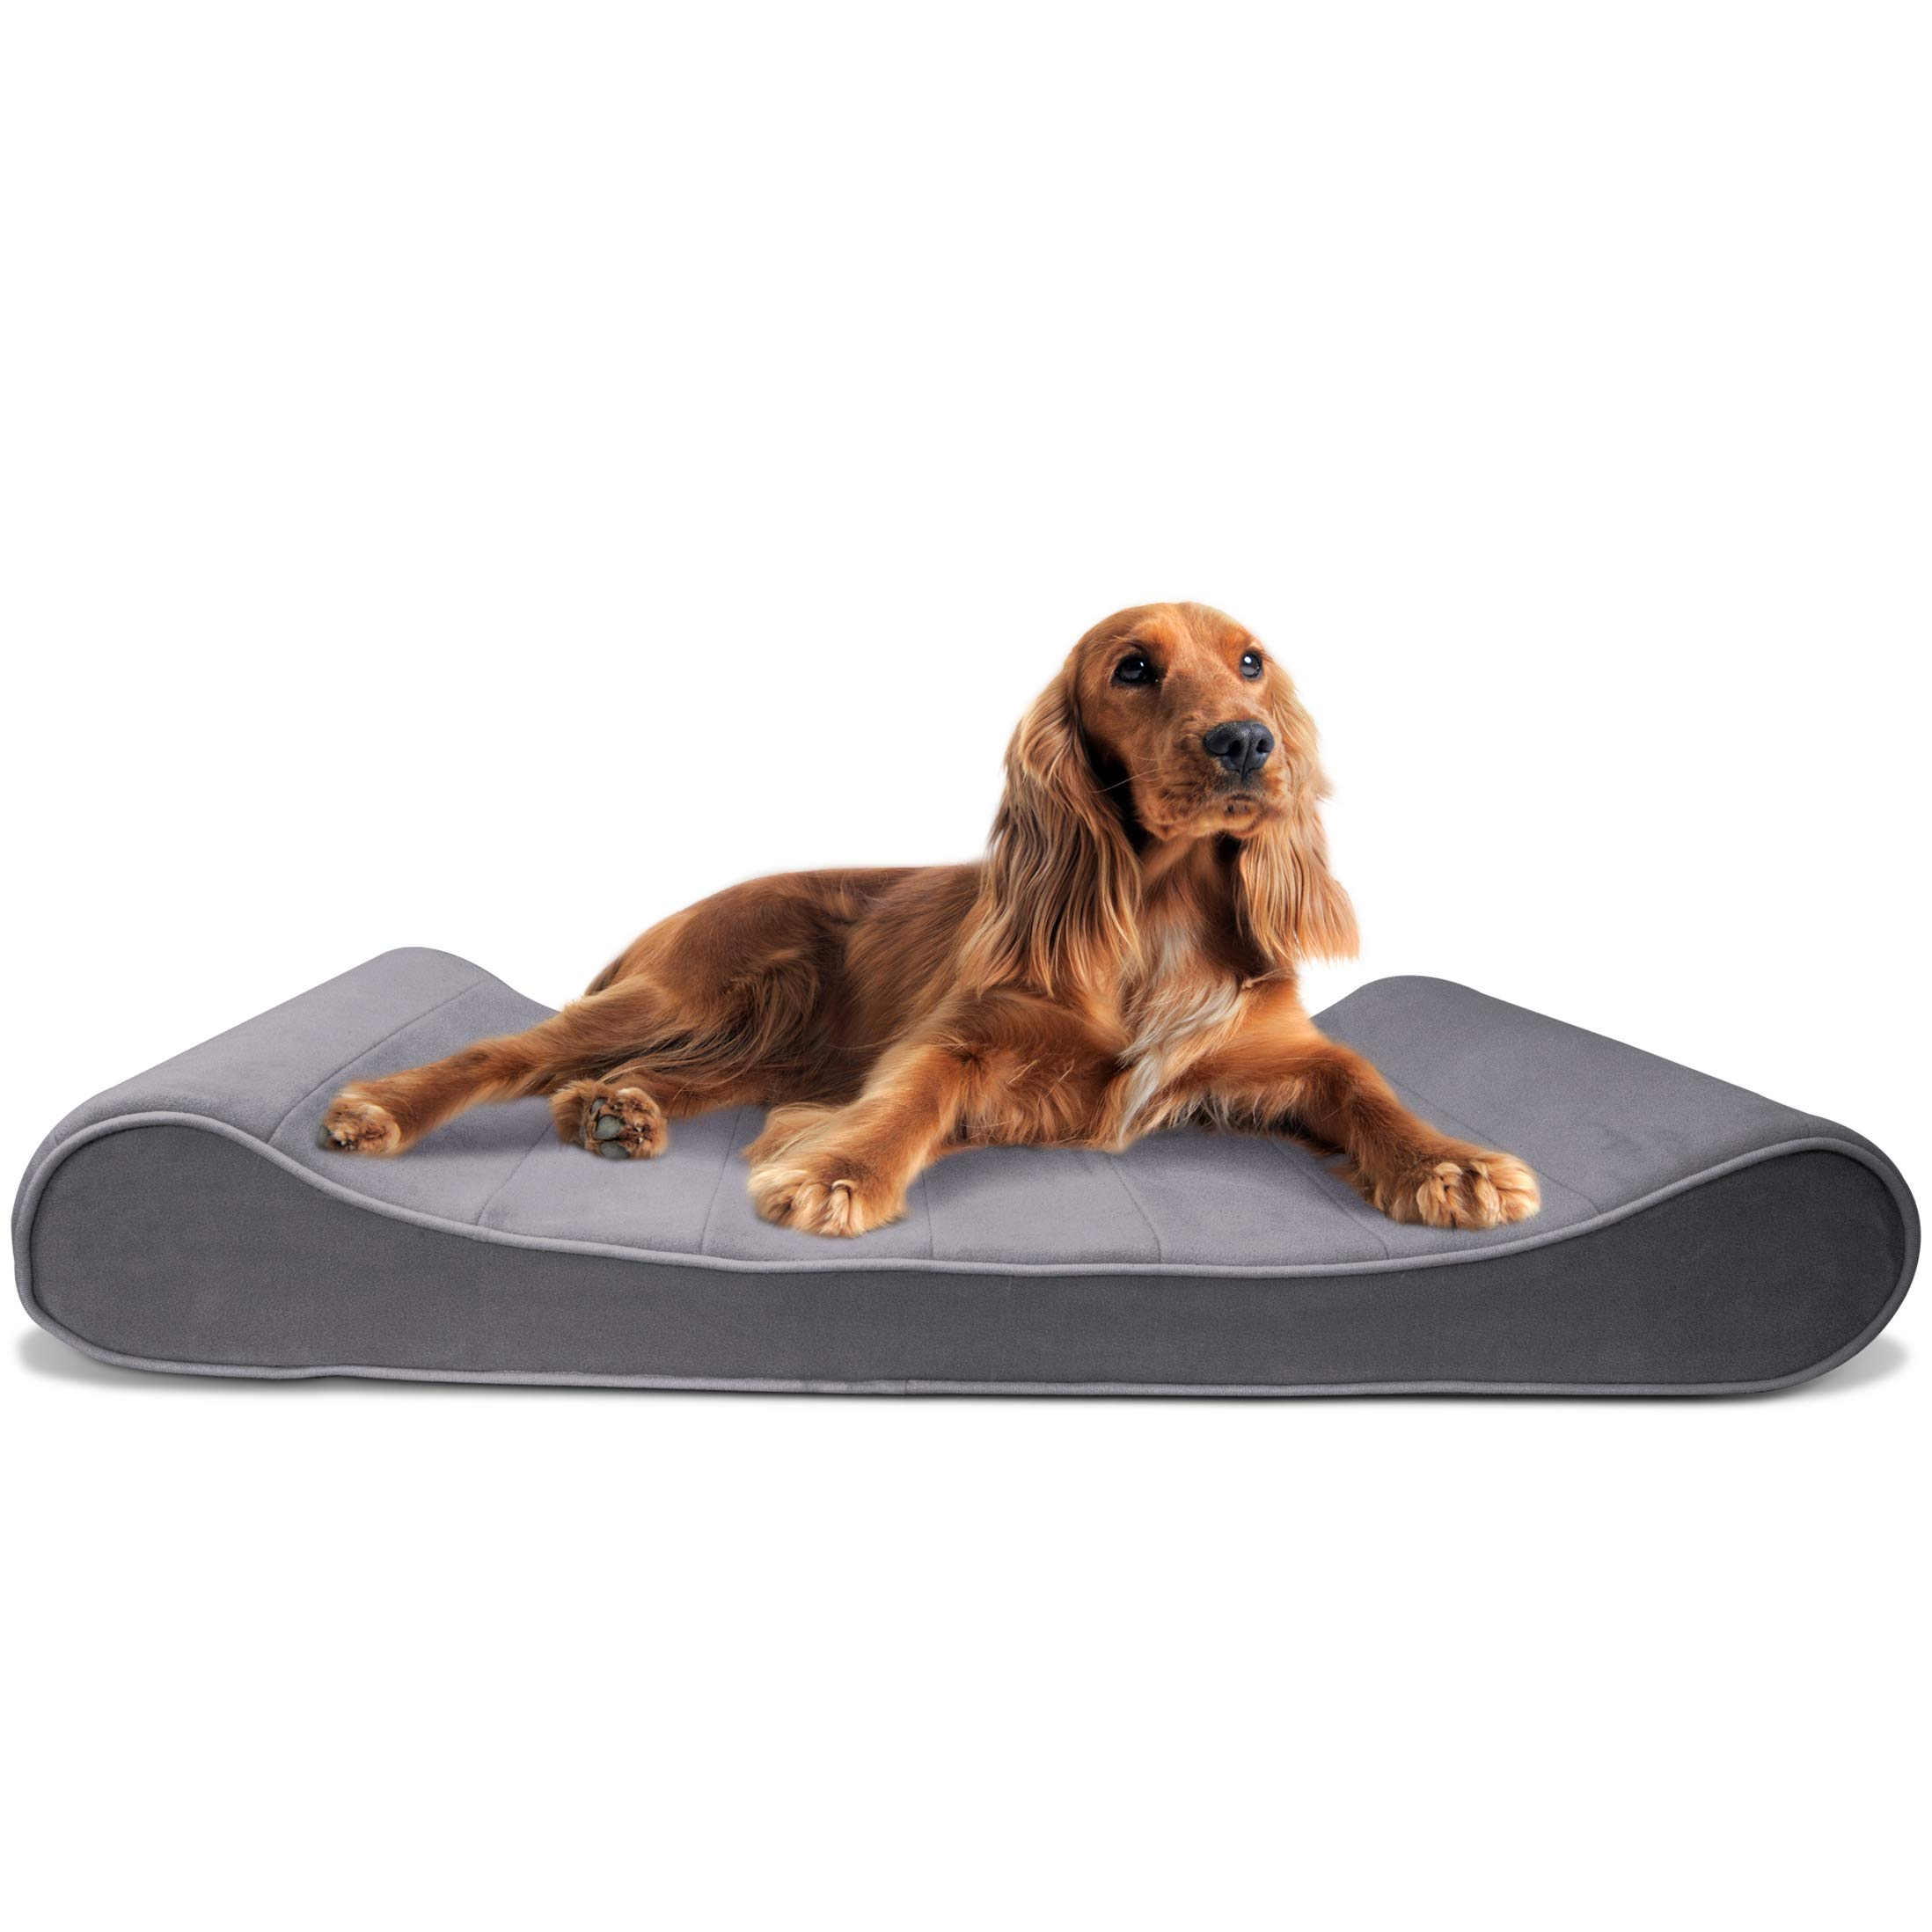 FurHaven Pet Dog Bed   Orthopedic Microvelvet Luxe Lounger Pet Bed for Dogs & Cats, Gray, Large